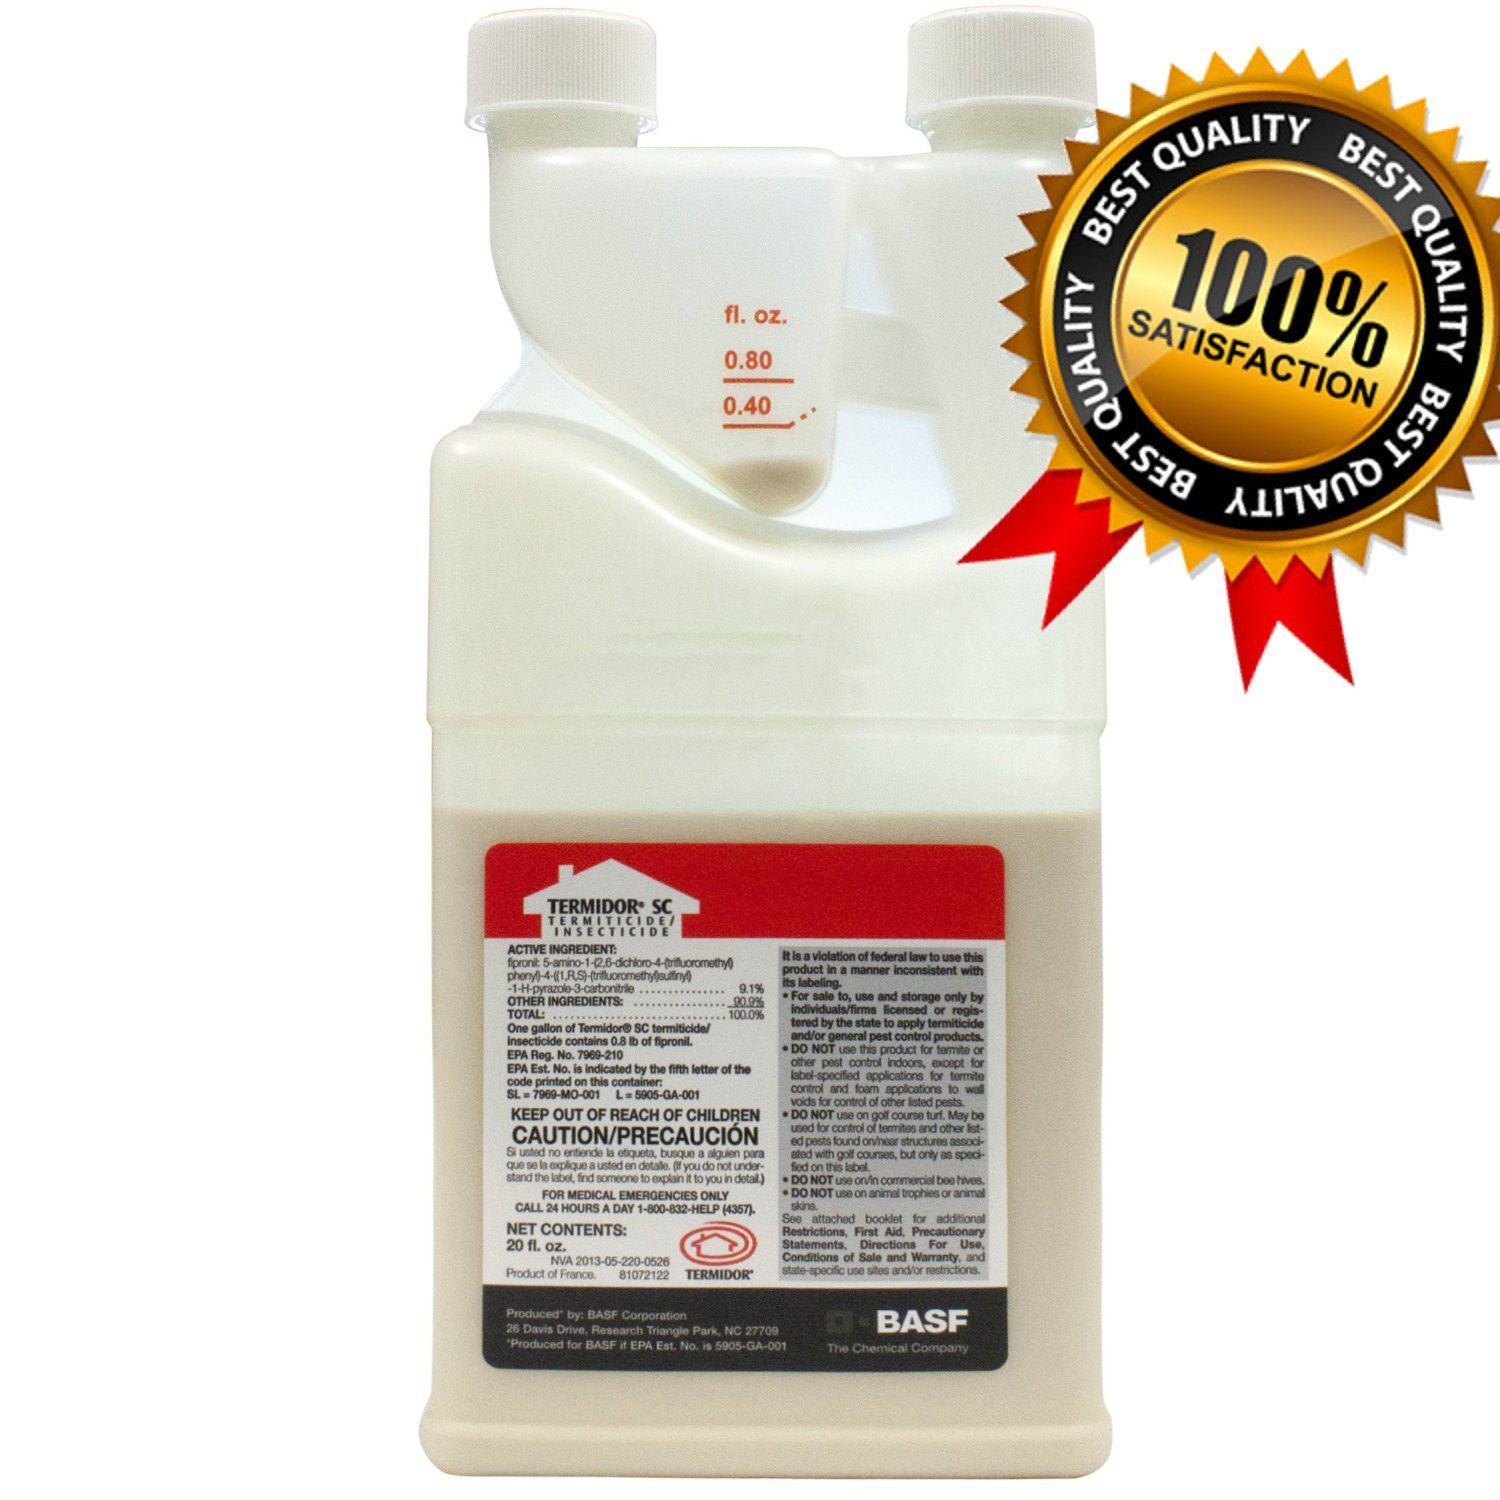 Termidor Sc Termite Ant Pest Insects Control Insecticide Termiticide Fipronil Termite Control Termite Treatment Pest Control Supplies